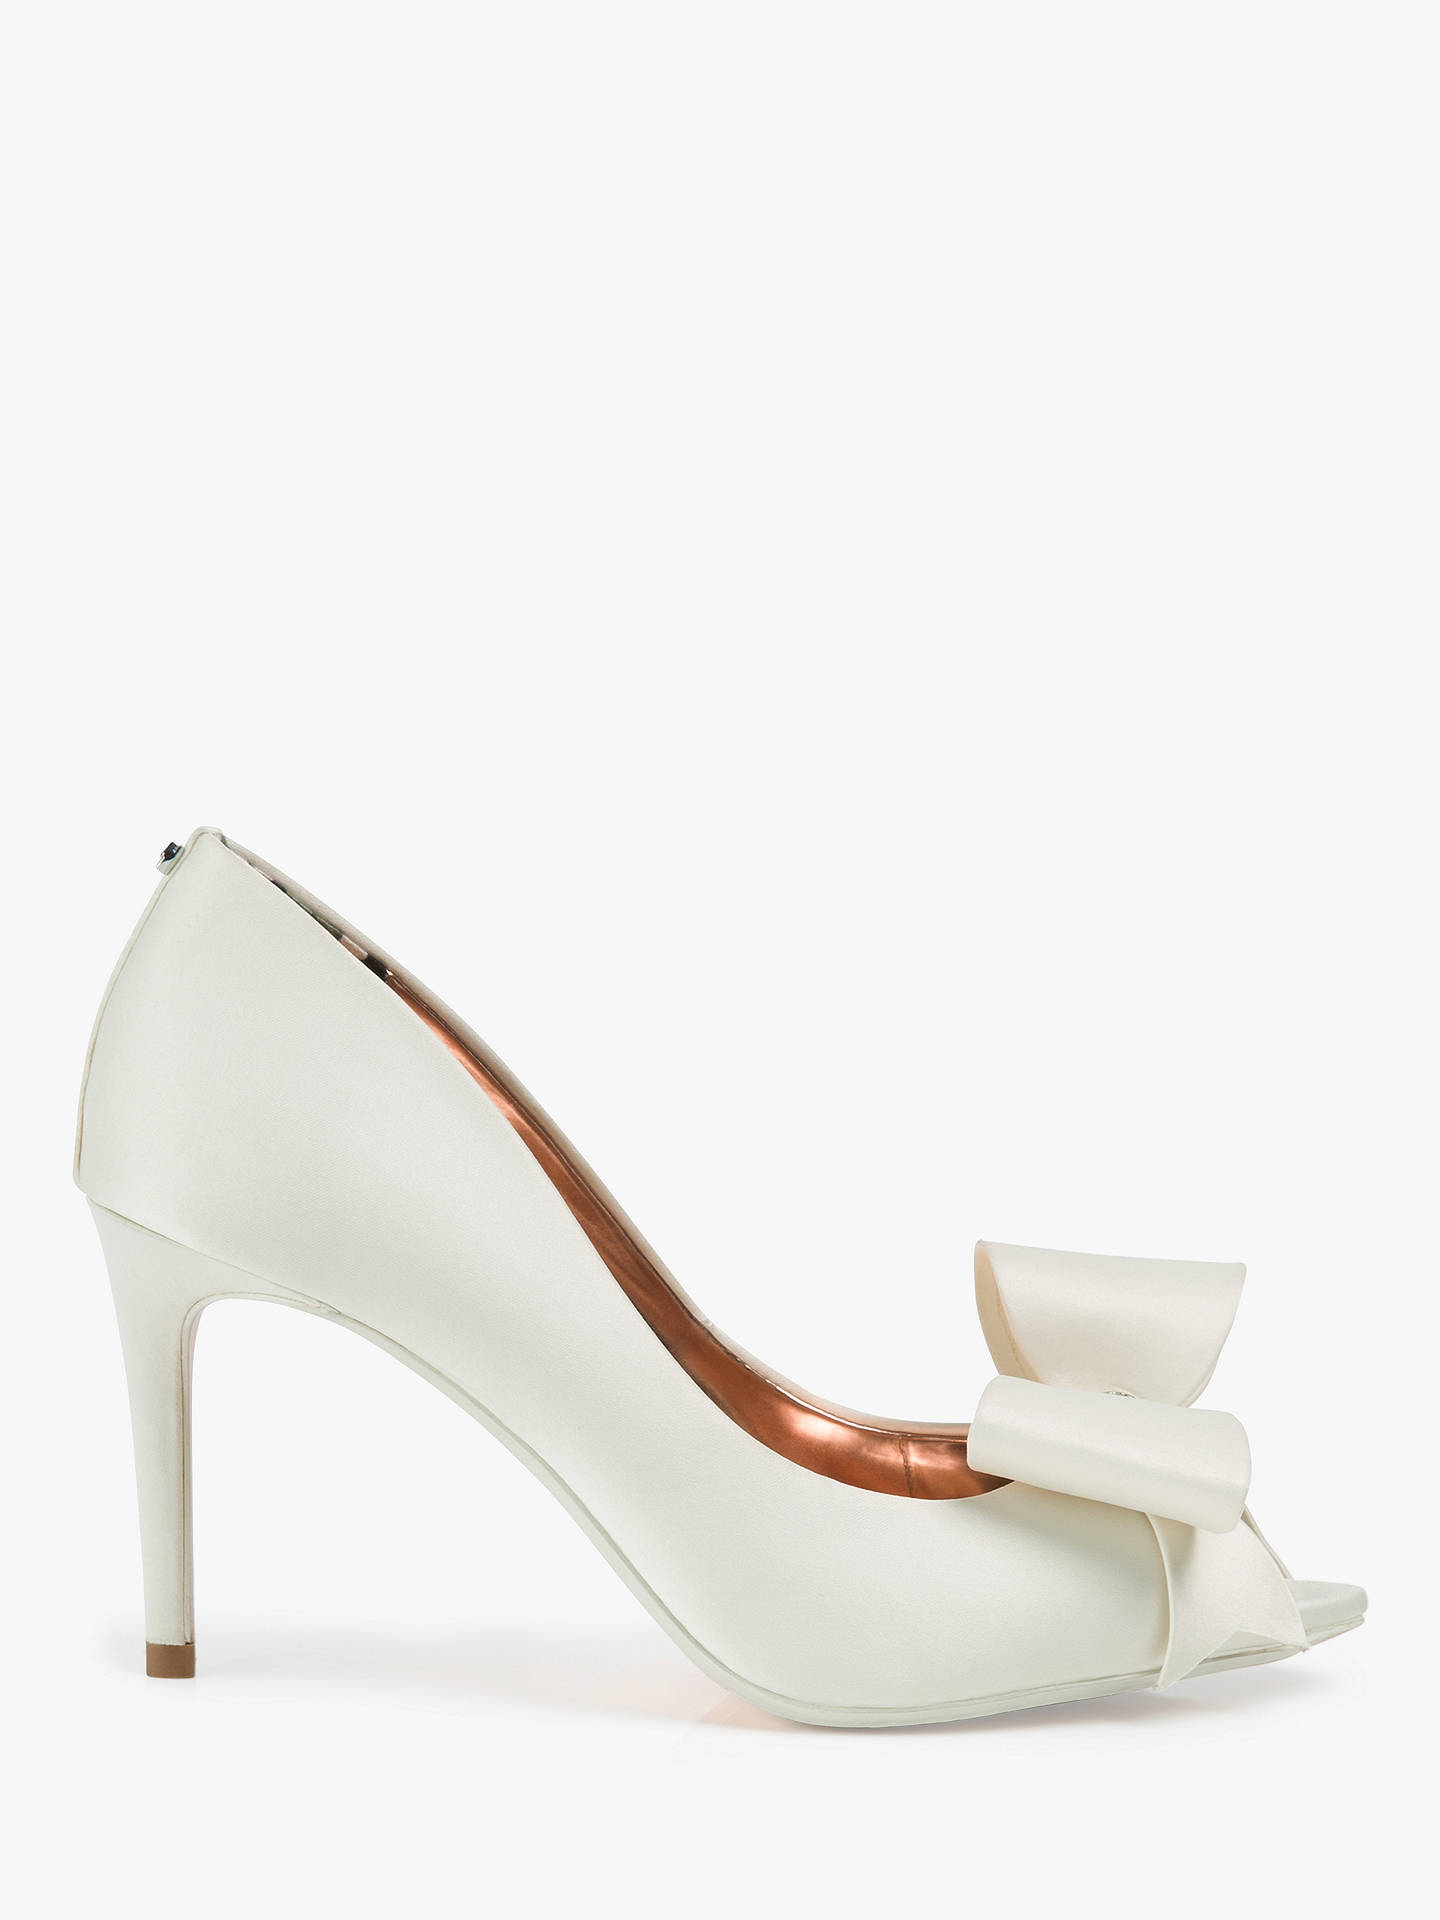 54ce83721f Ted Baker Nualas Bow Heel Court Shoes, Ivory